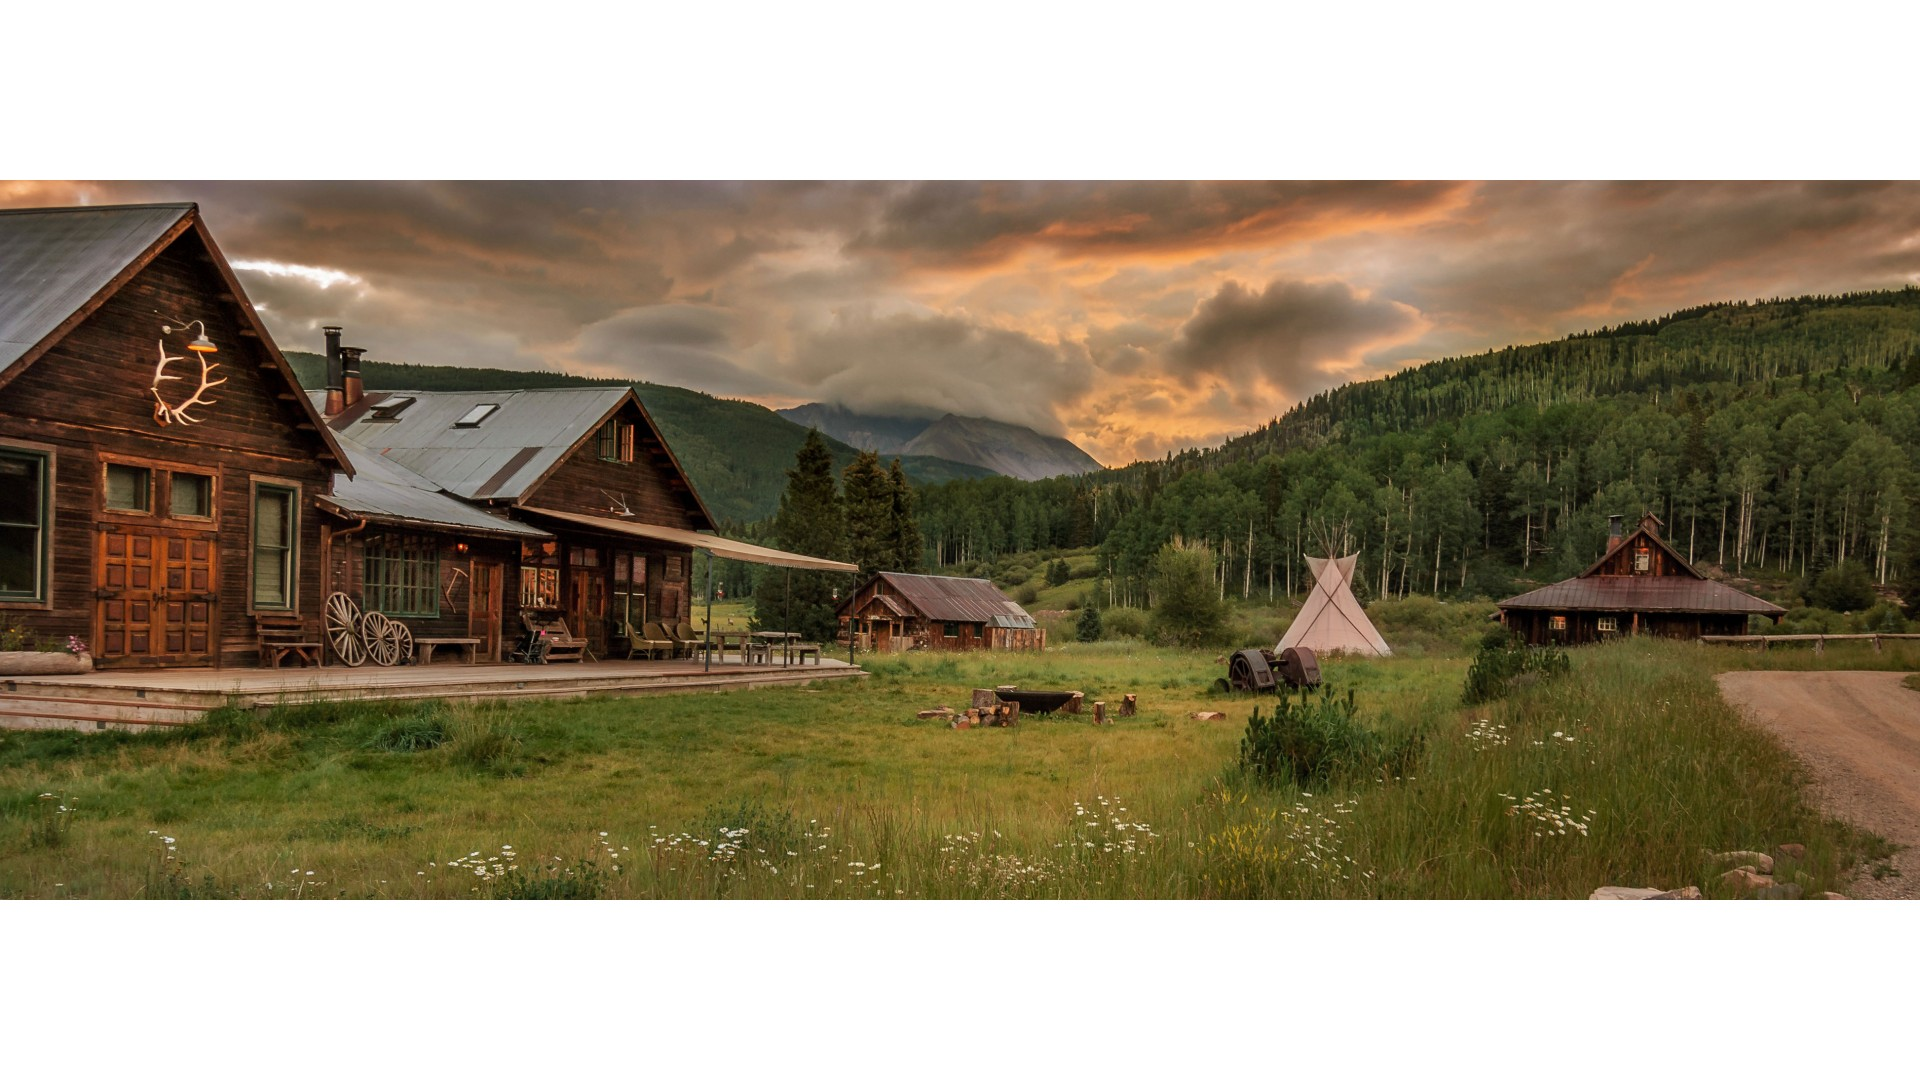 com colorado spa pagosasprings tub cabins springs with pagosa quick a and guide resort hot in articles tubs the